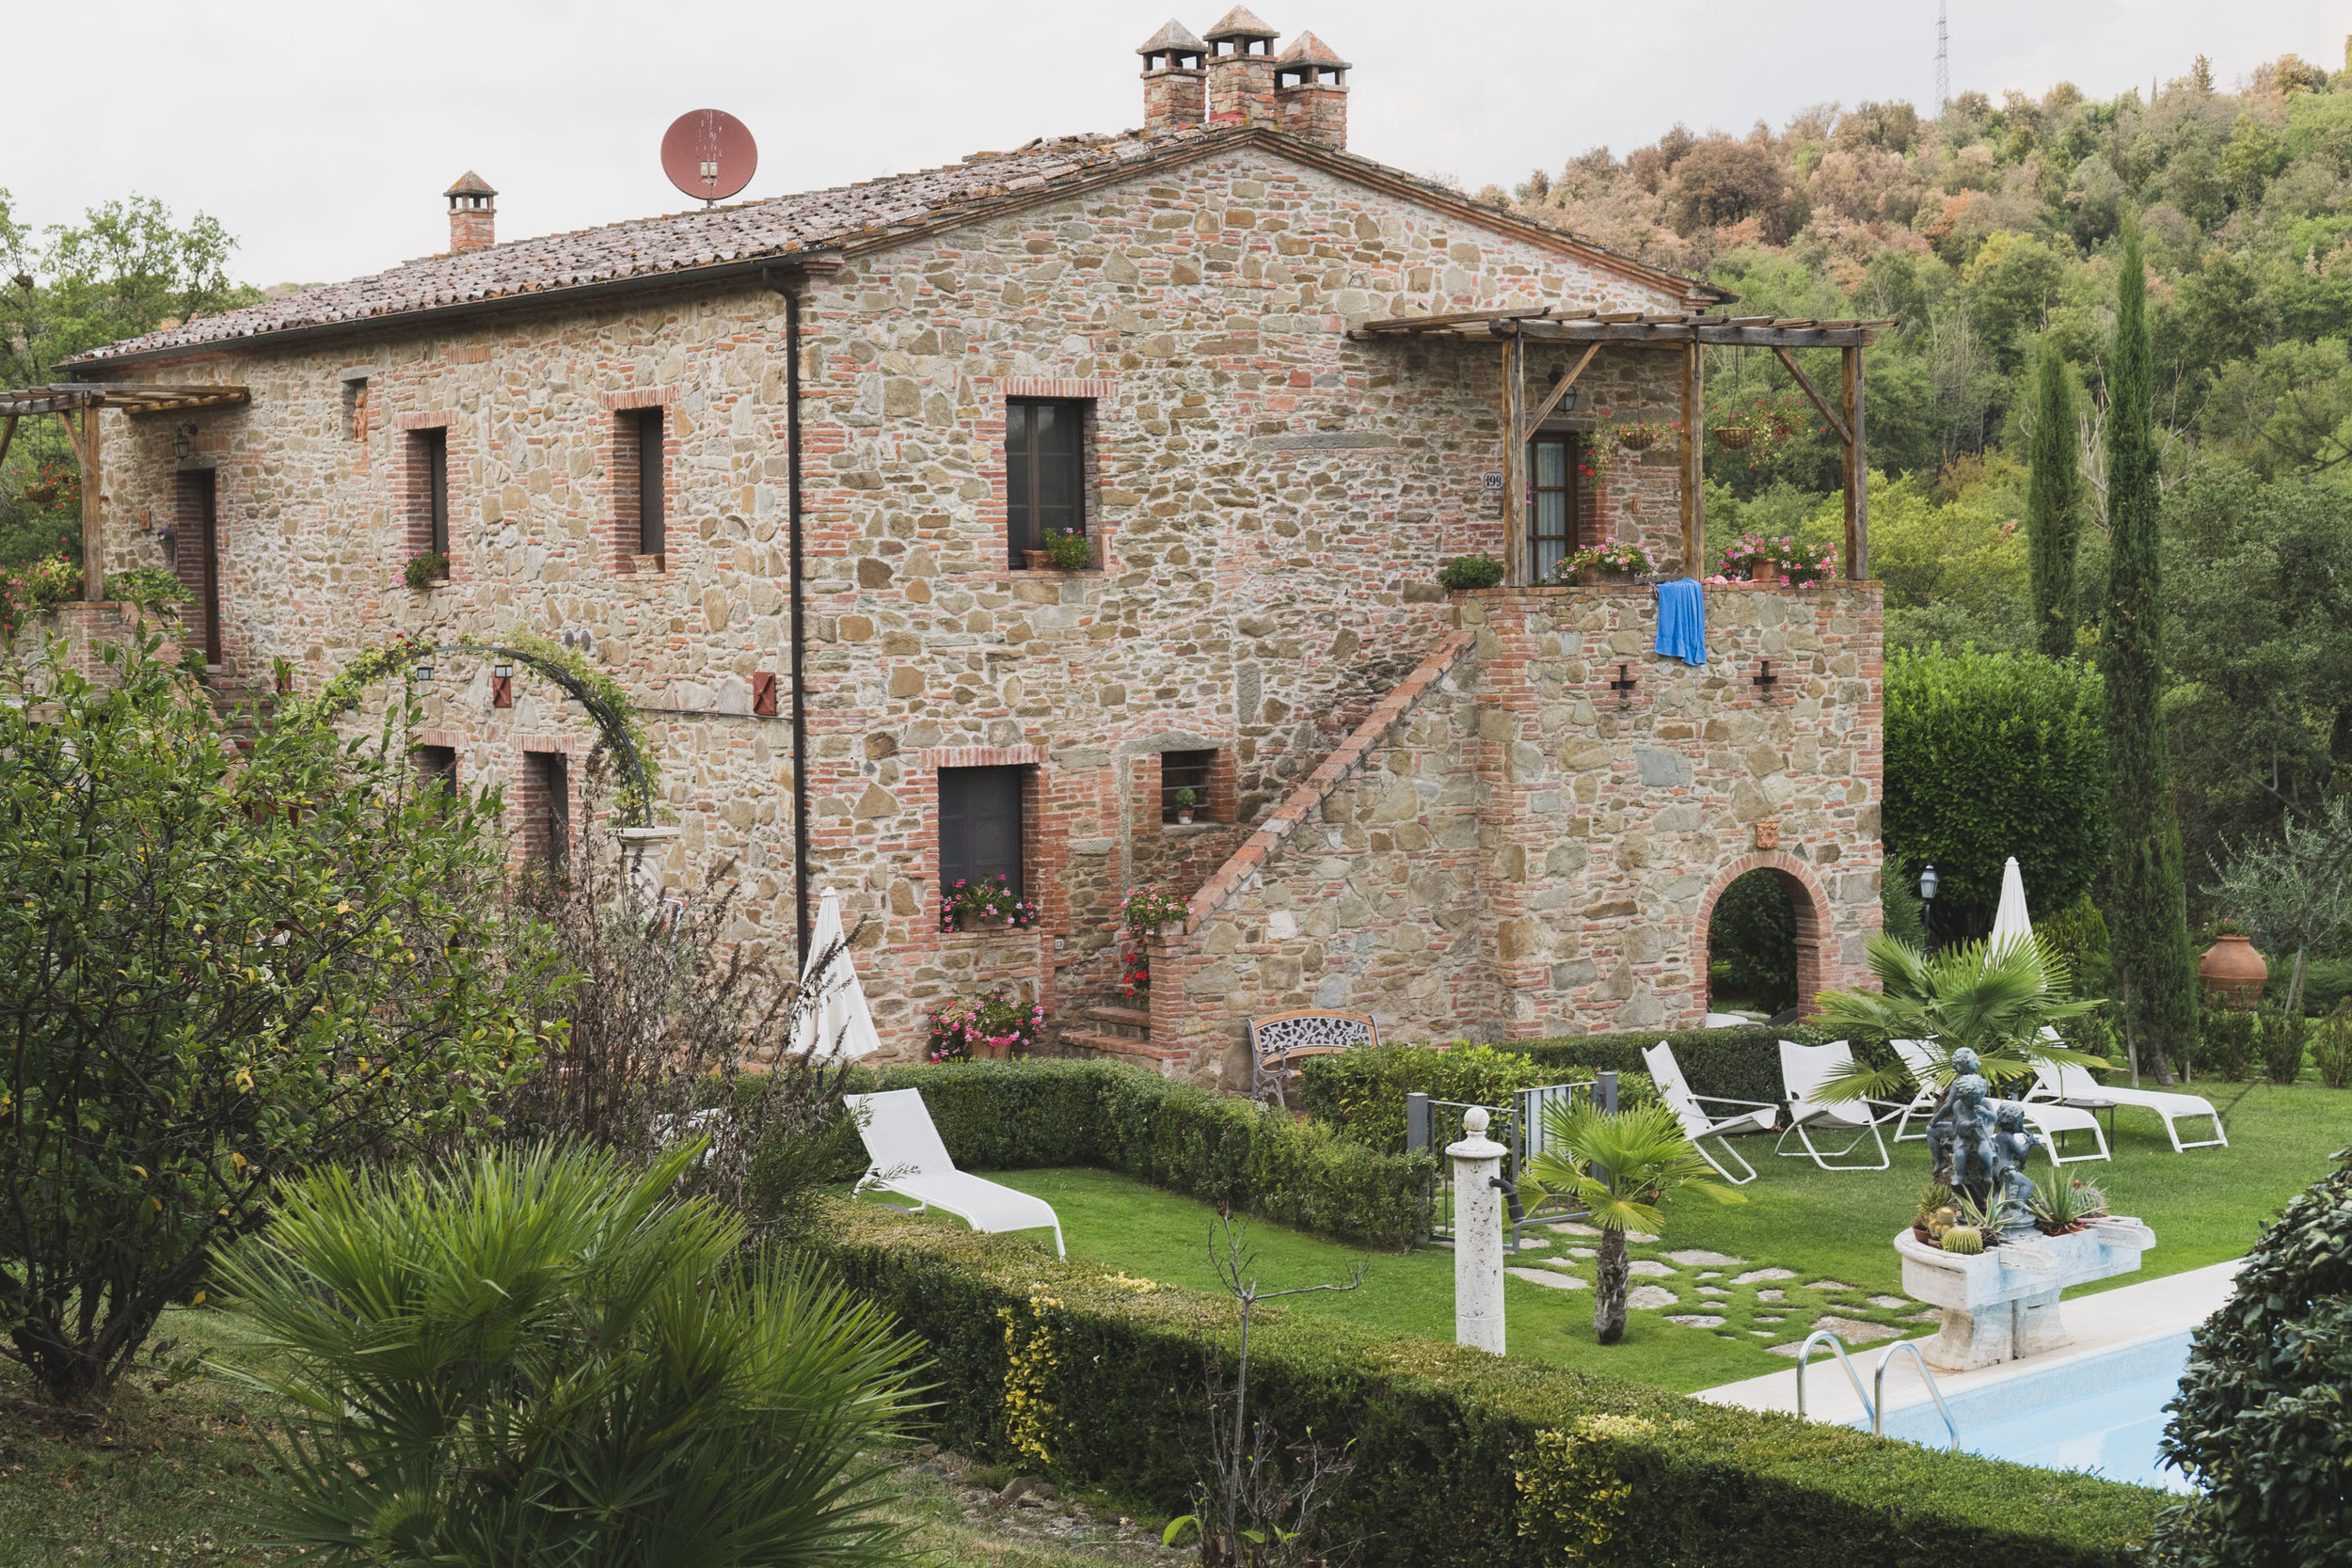 Our Airbnb at Casa Podere la Casina - Rigomagno